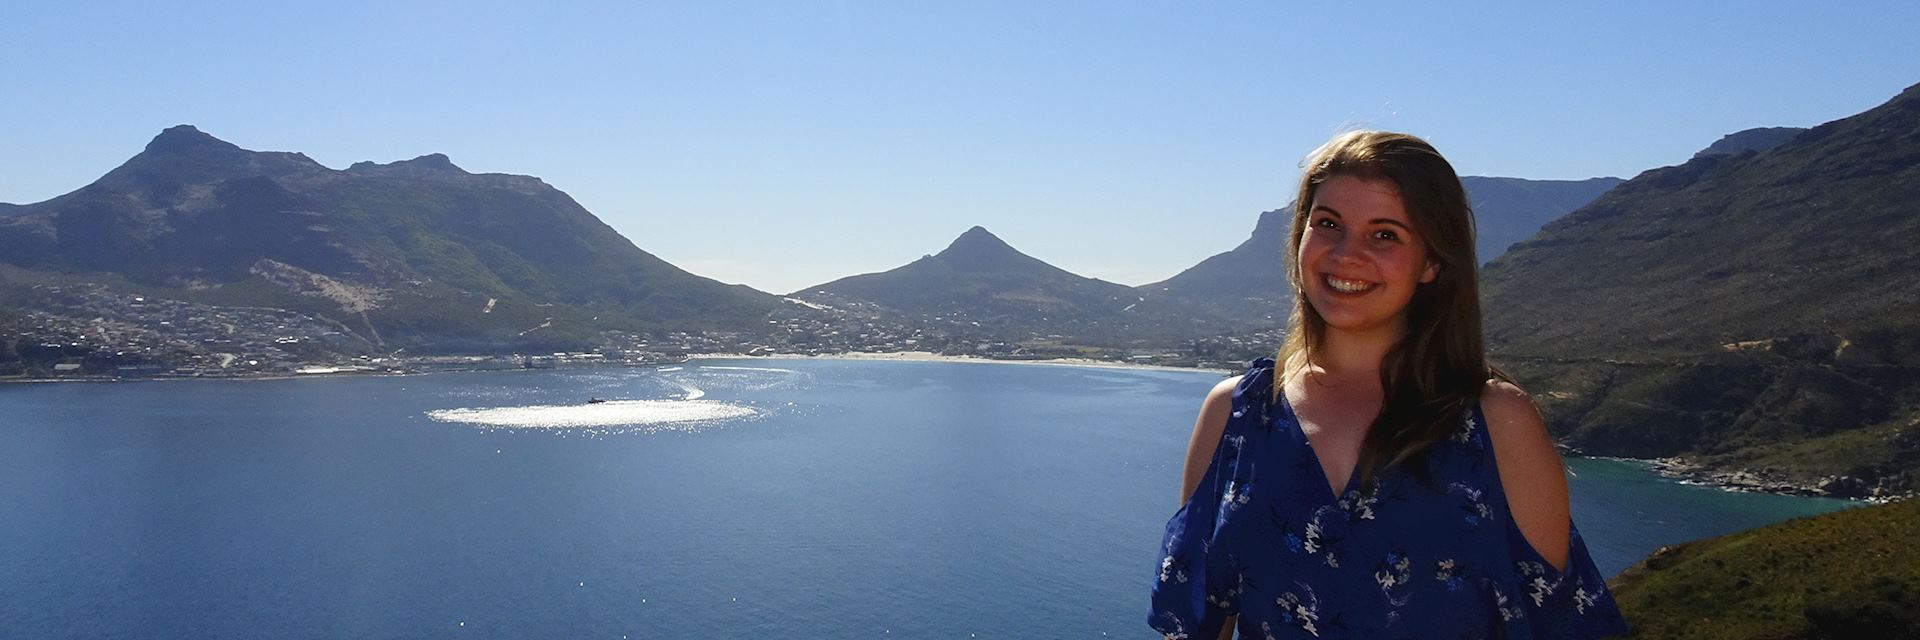 Kirsty visiting Hout Bay, South Africa